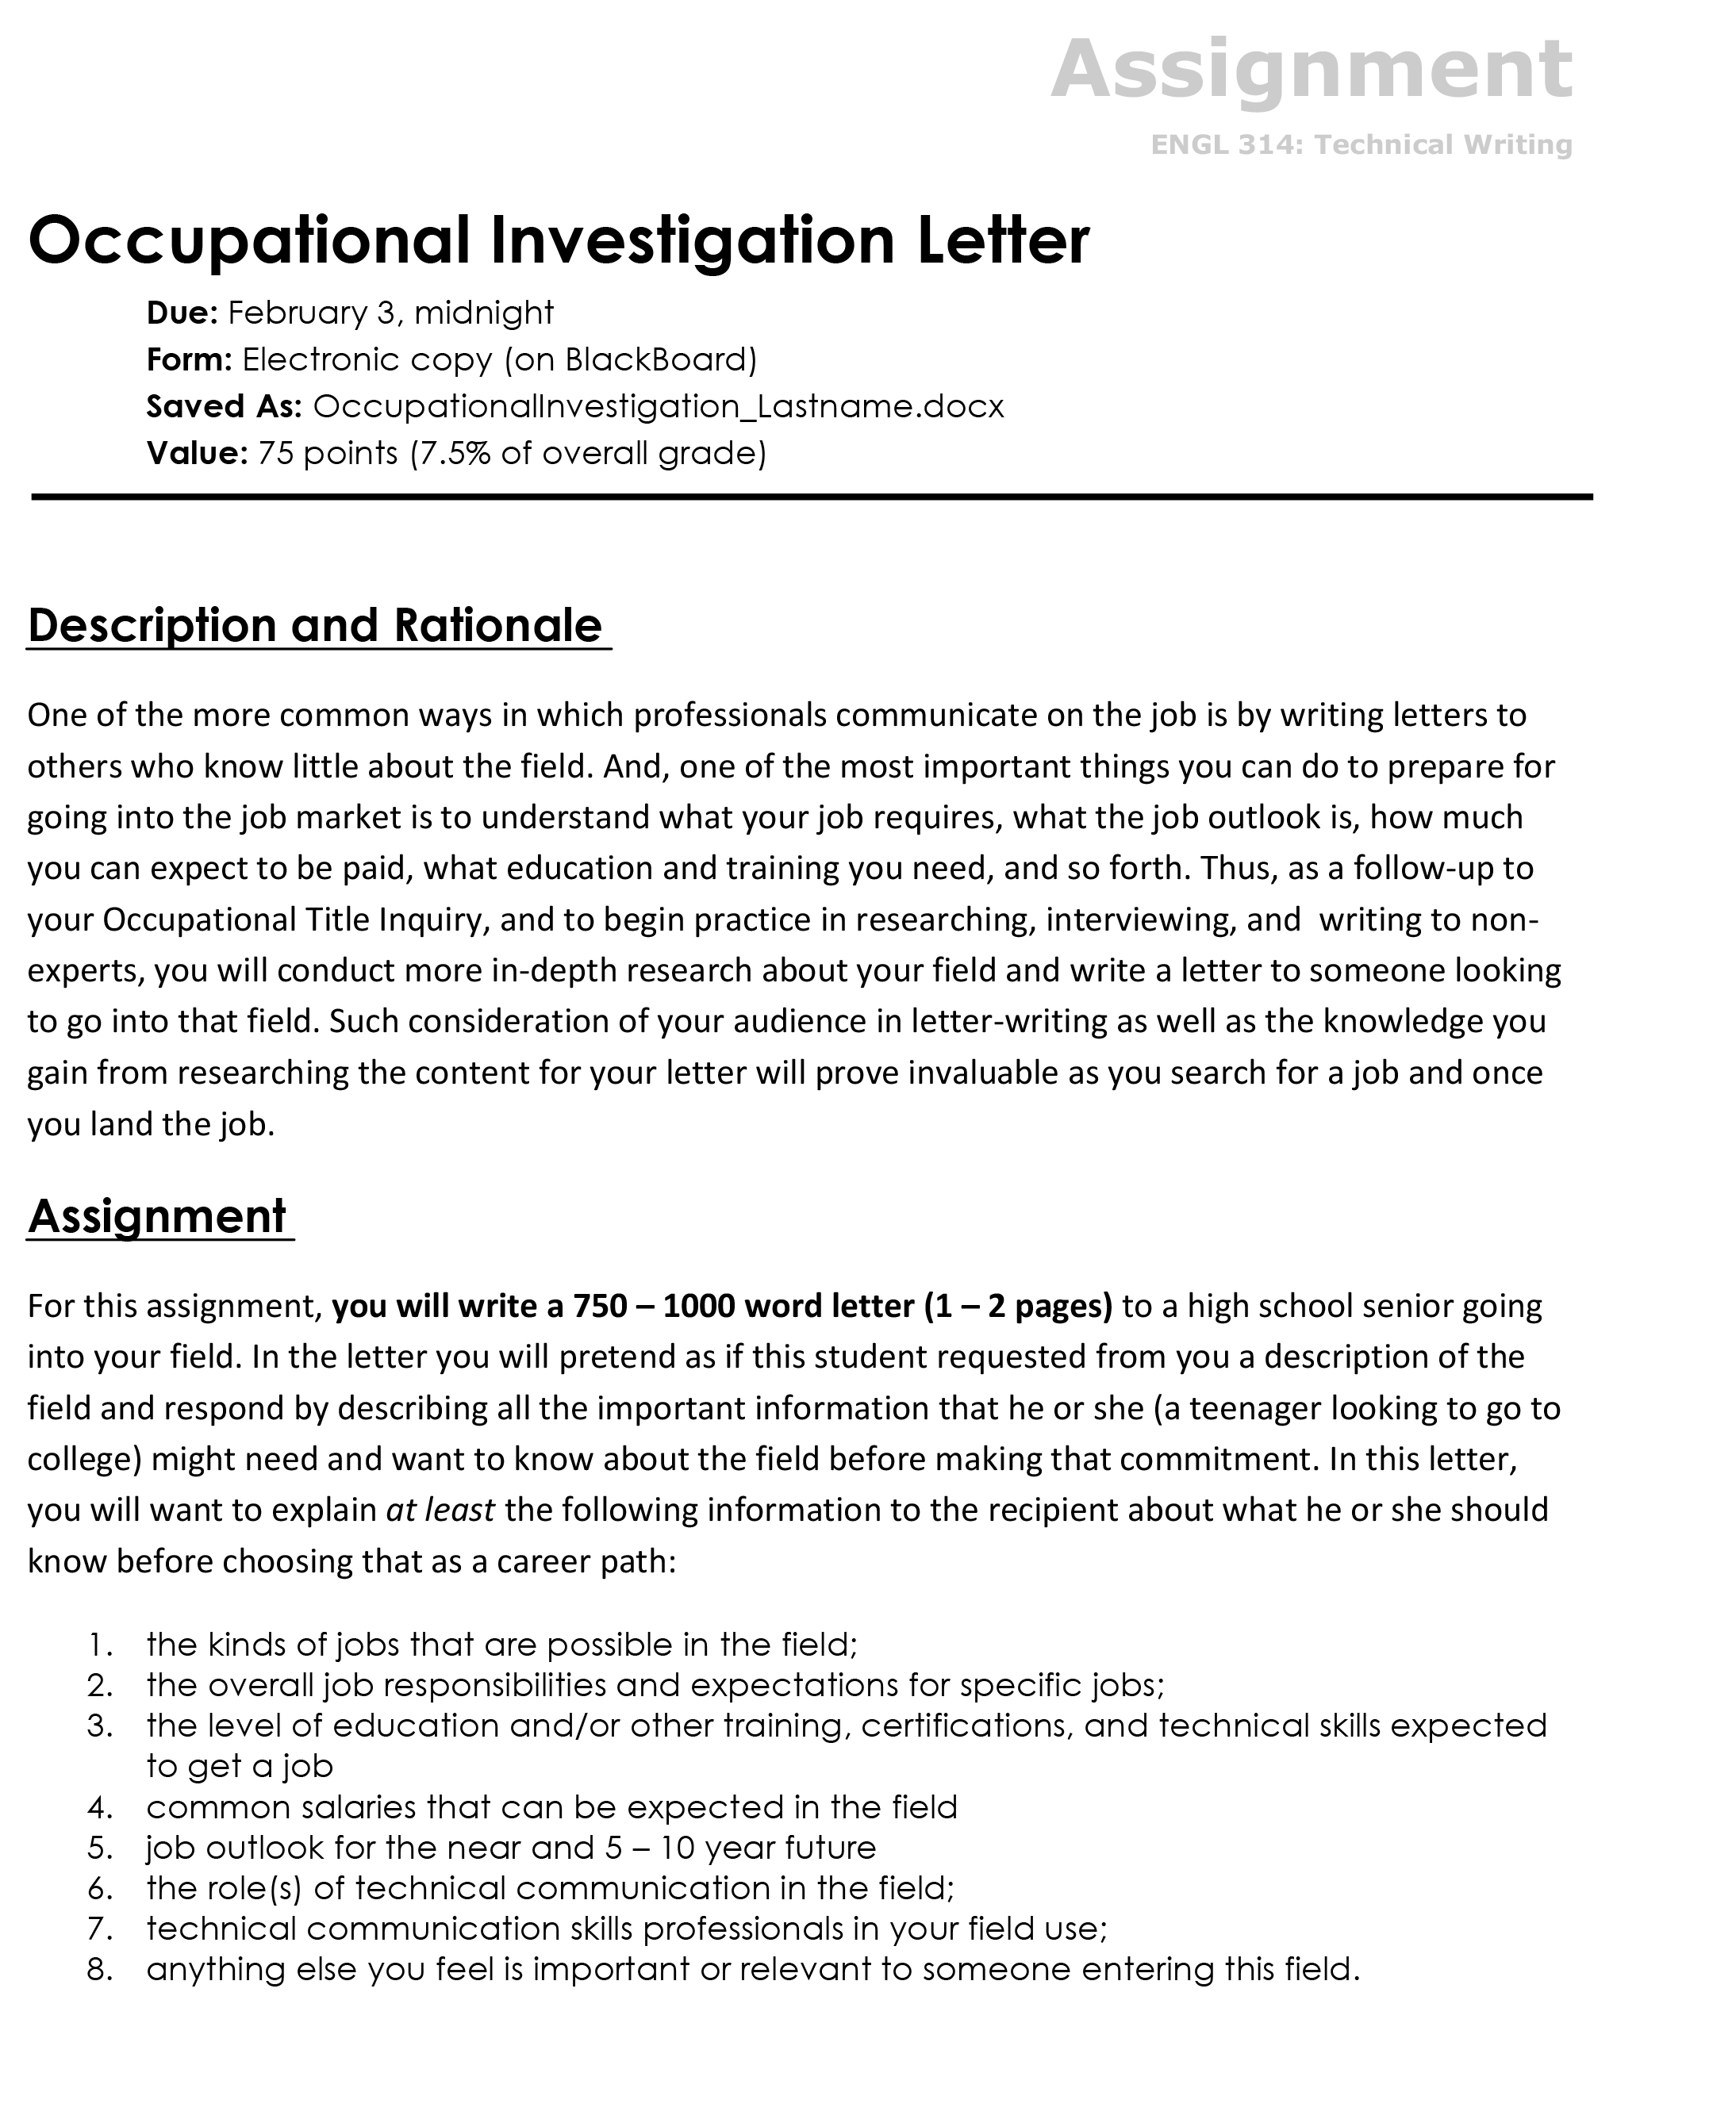 4occupational investigation letter the visual communication guy 4occupational investigation letter expocarfo